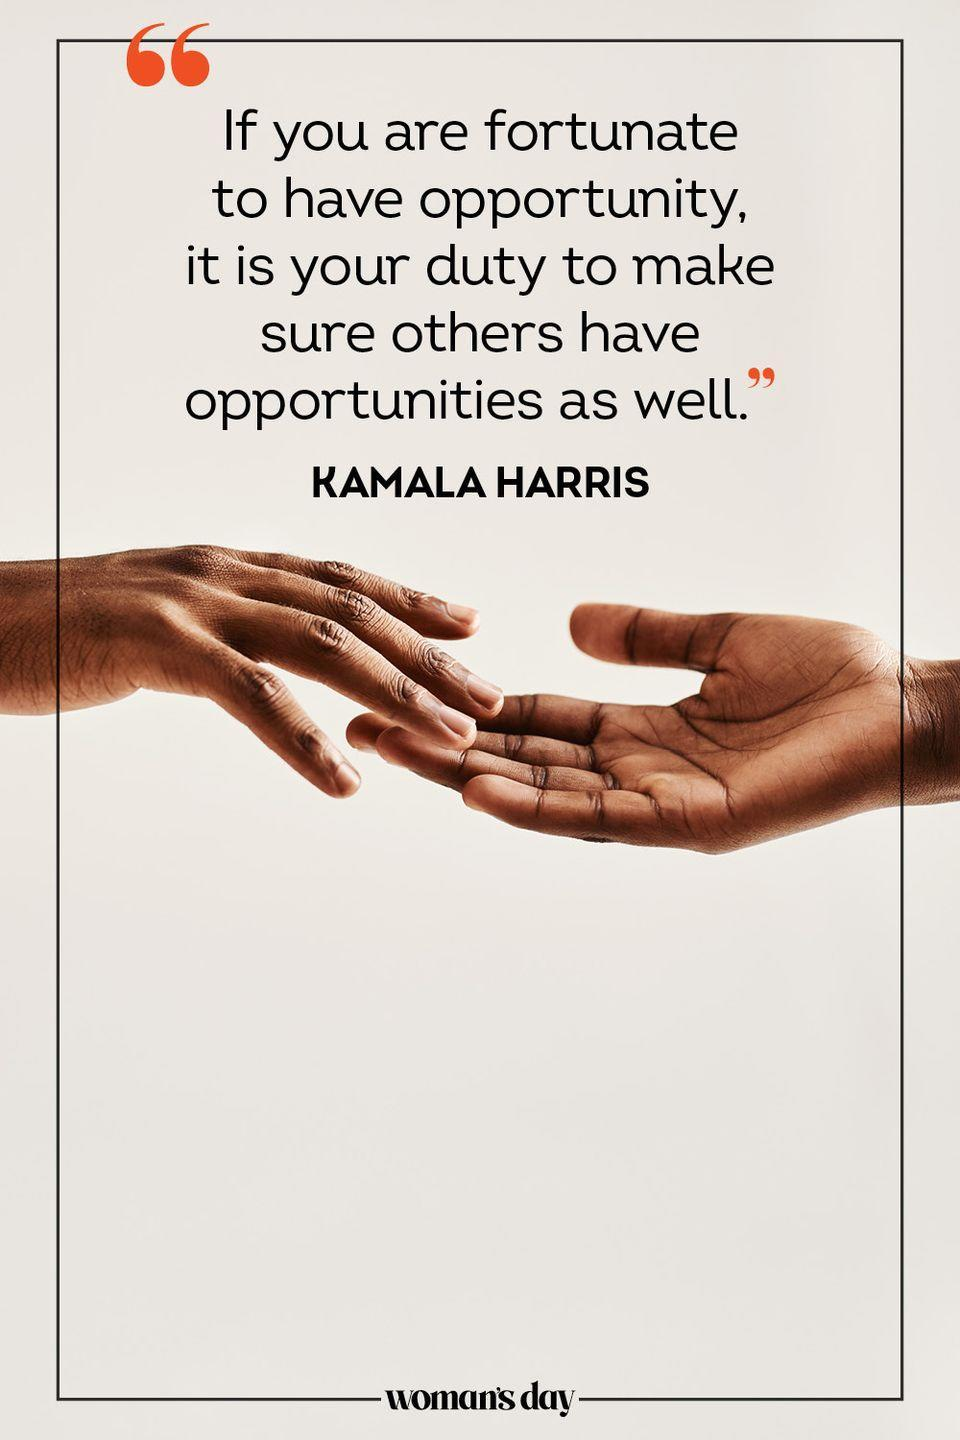 """<p>""""If you are fortunate to have opportunity, it is your duty to make sure others have opportunities as well."""" — Kamala Harris</p>"""